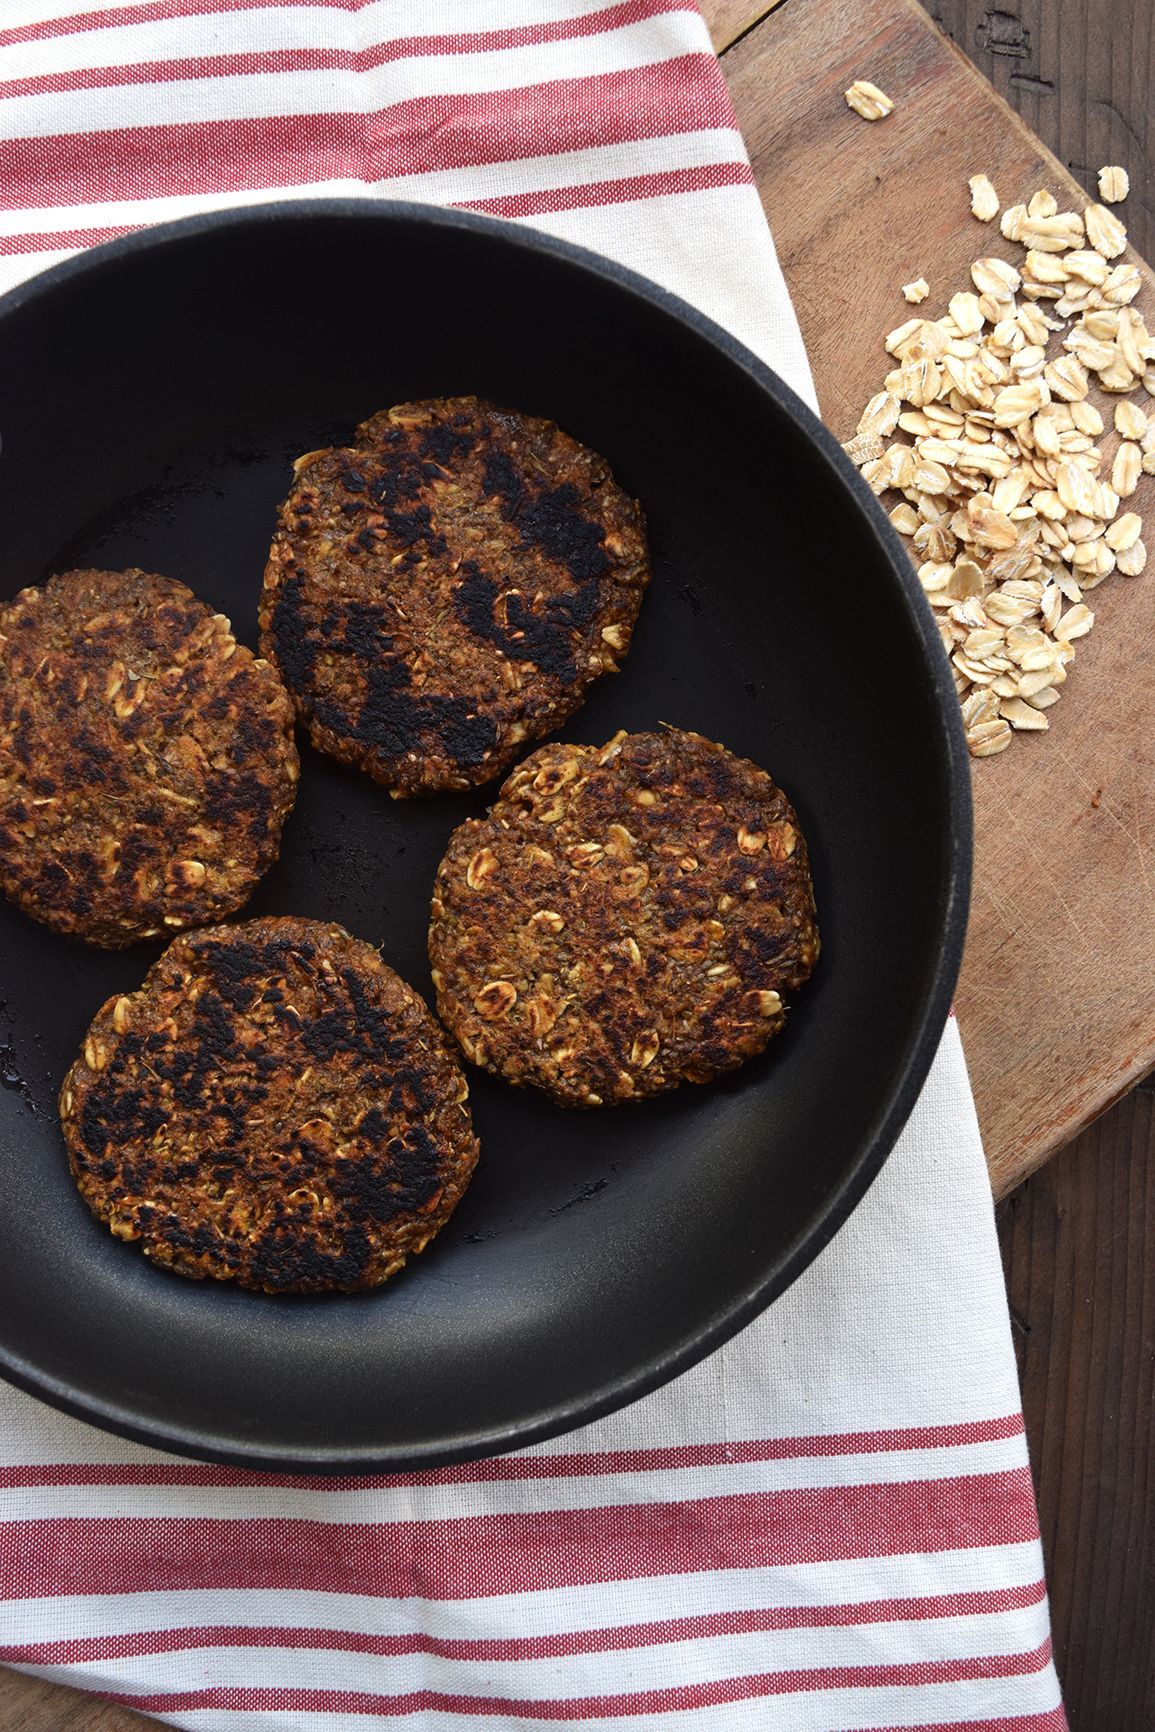 Spicy Vegan Breakfast Sausage Patties Made With Oats Hearty Smoky Savory And Gluten Free The Perfect Add Savory Vegan Sausage Breakfast Whole Food Recipes